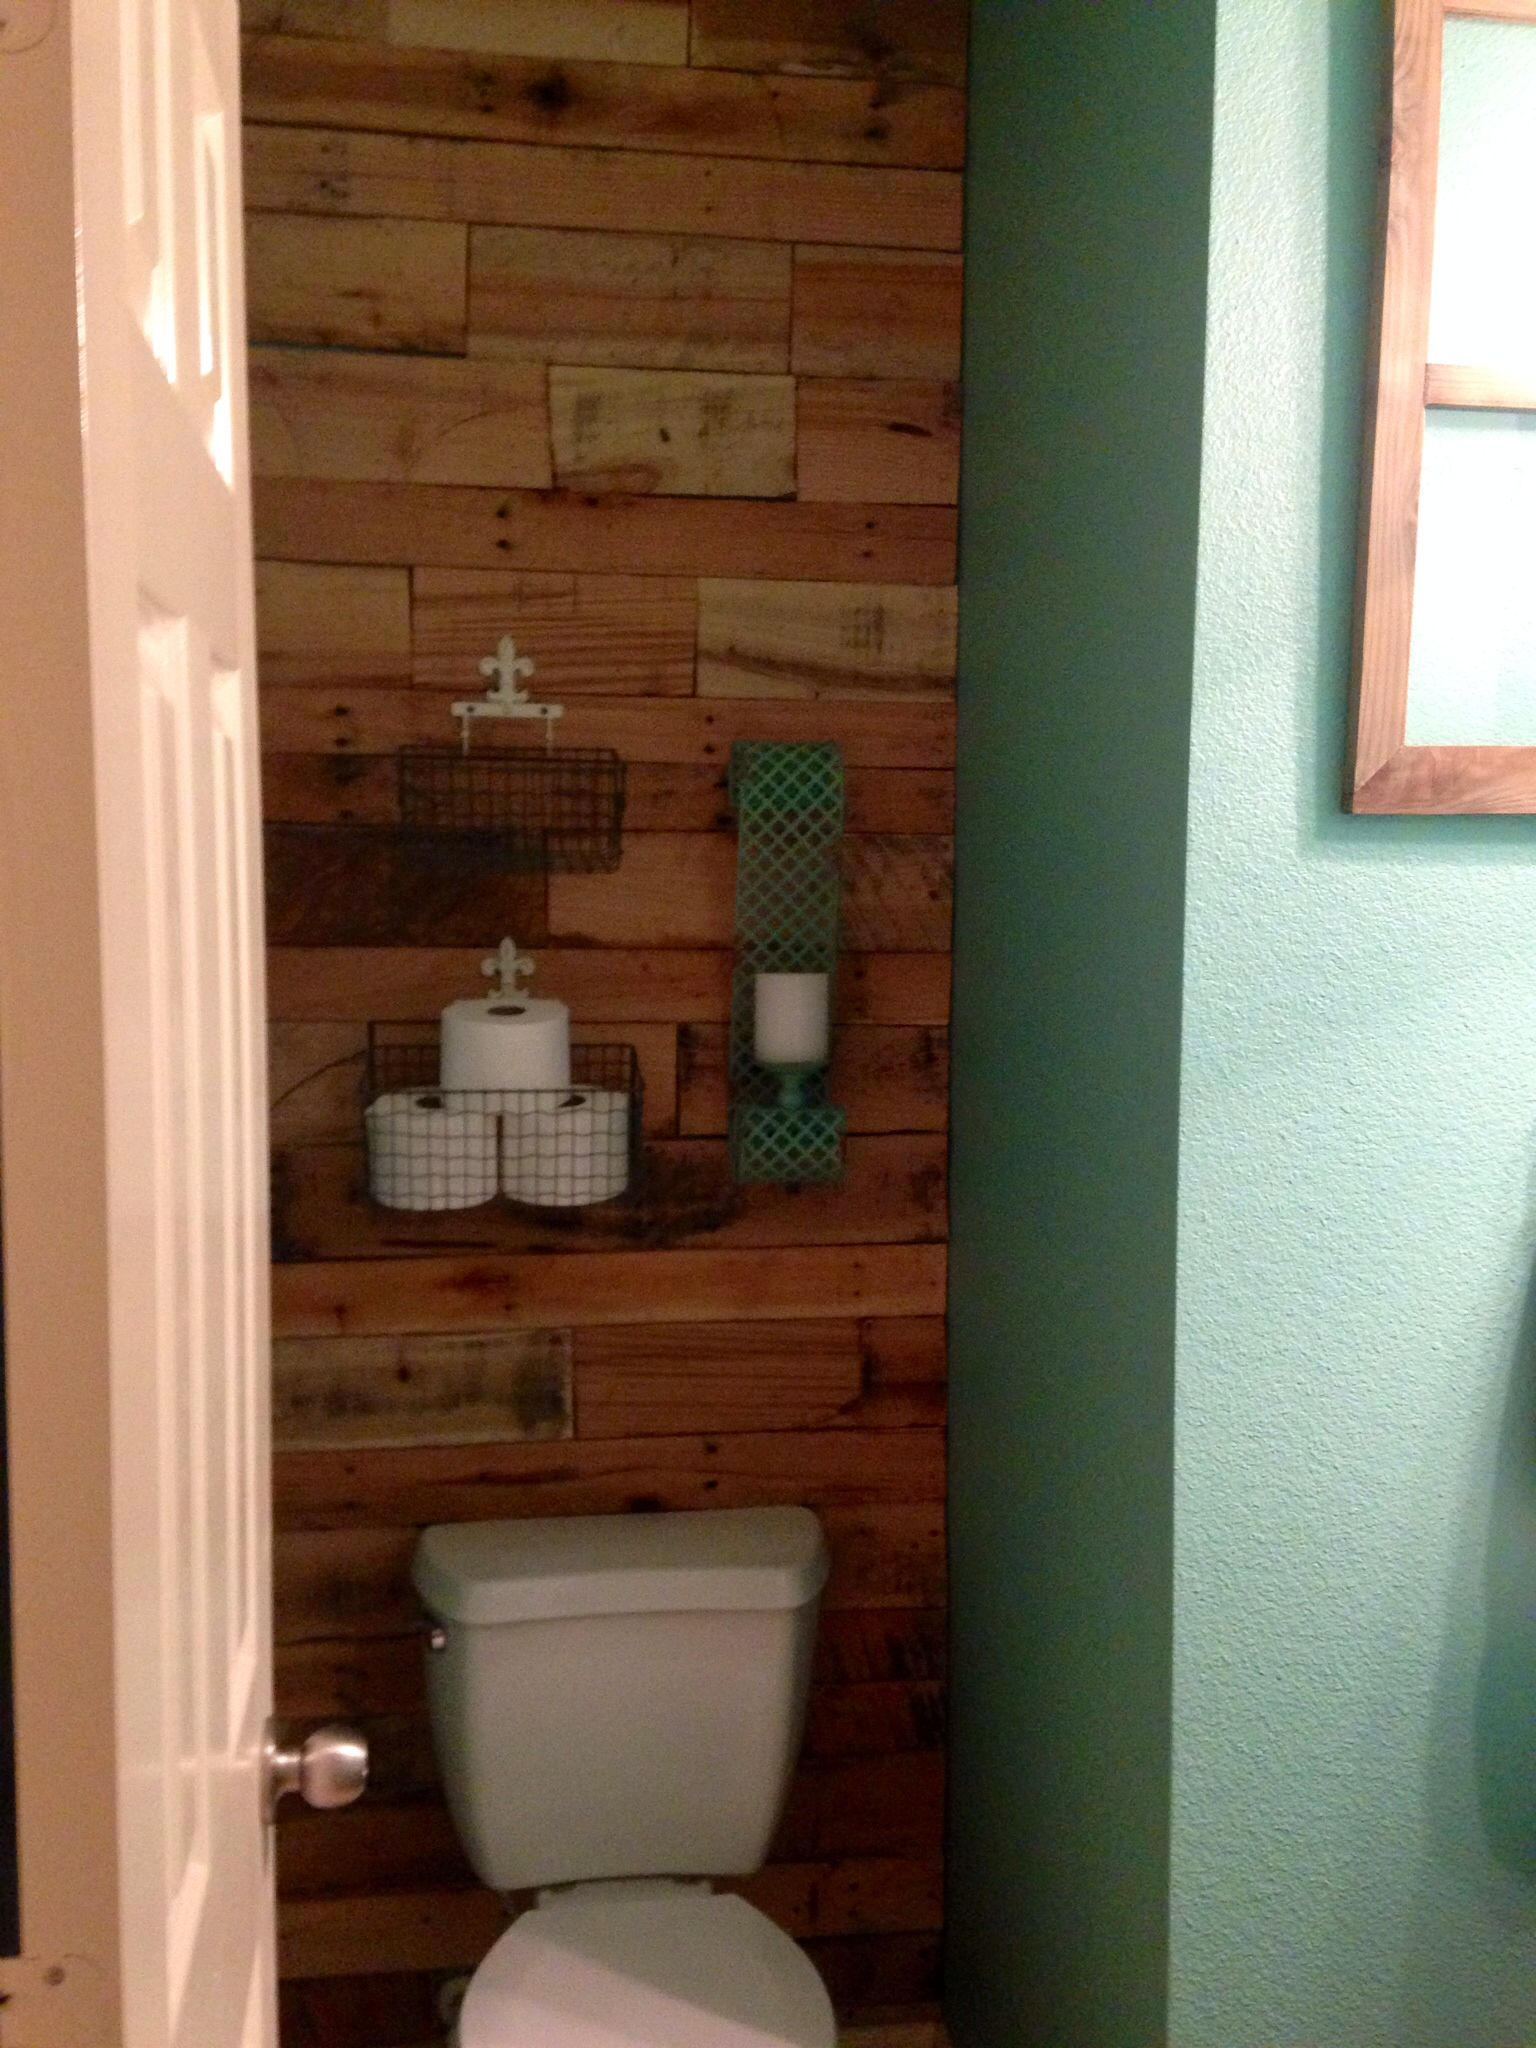 Pallet Wall Bathroom Pallet Wall Behind Toilet Wall Color Sherwin Williams Drizzle